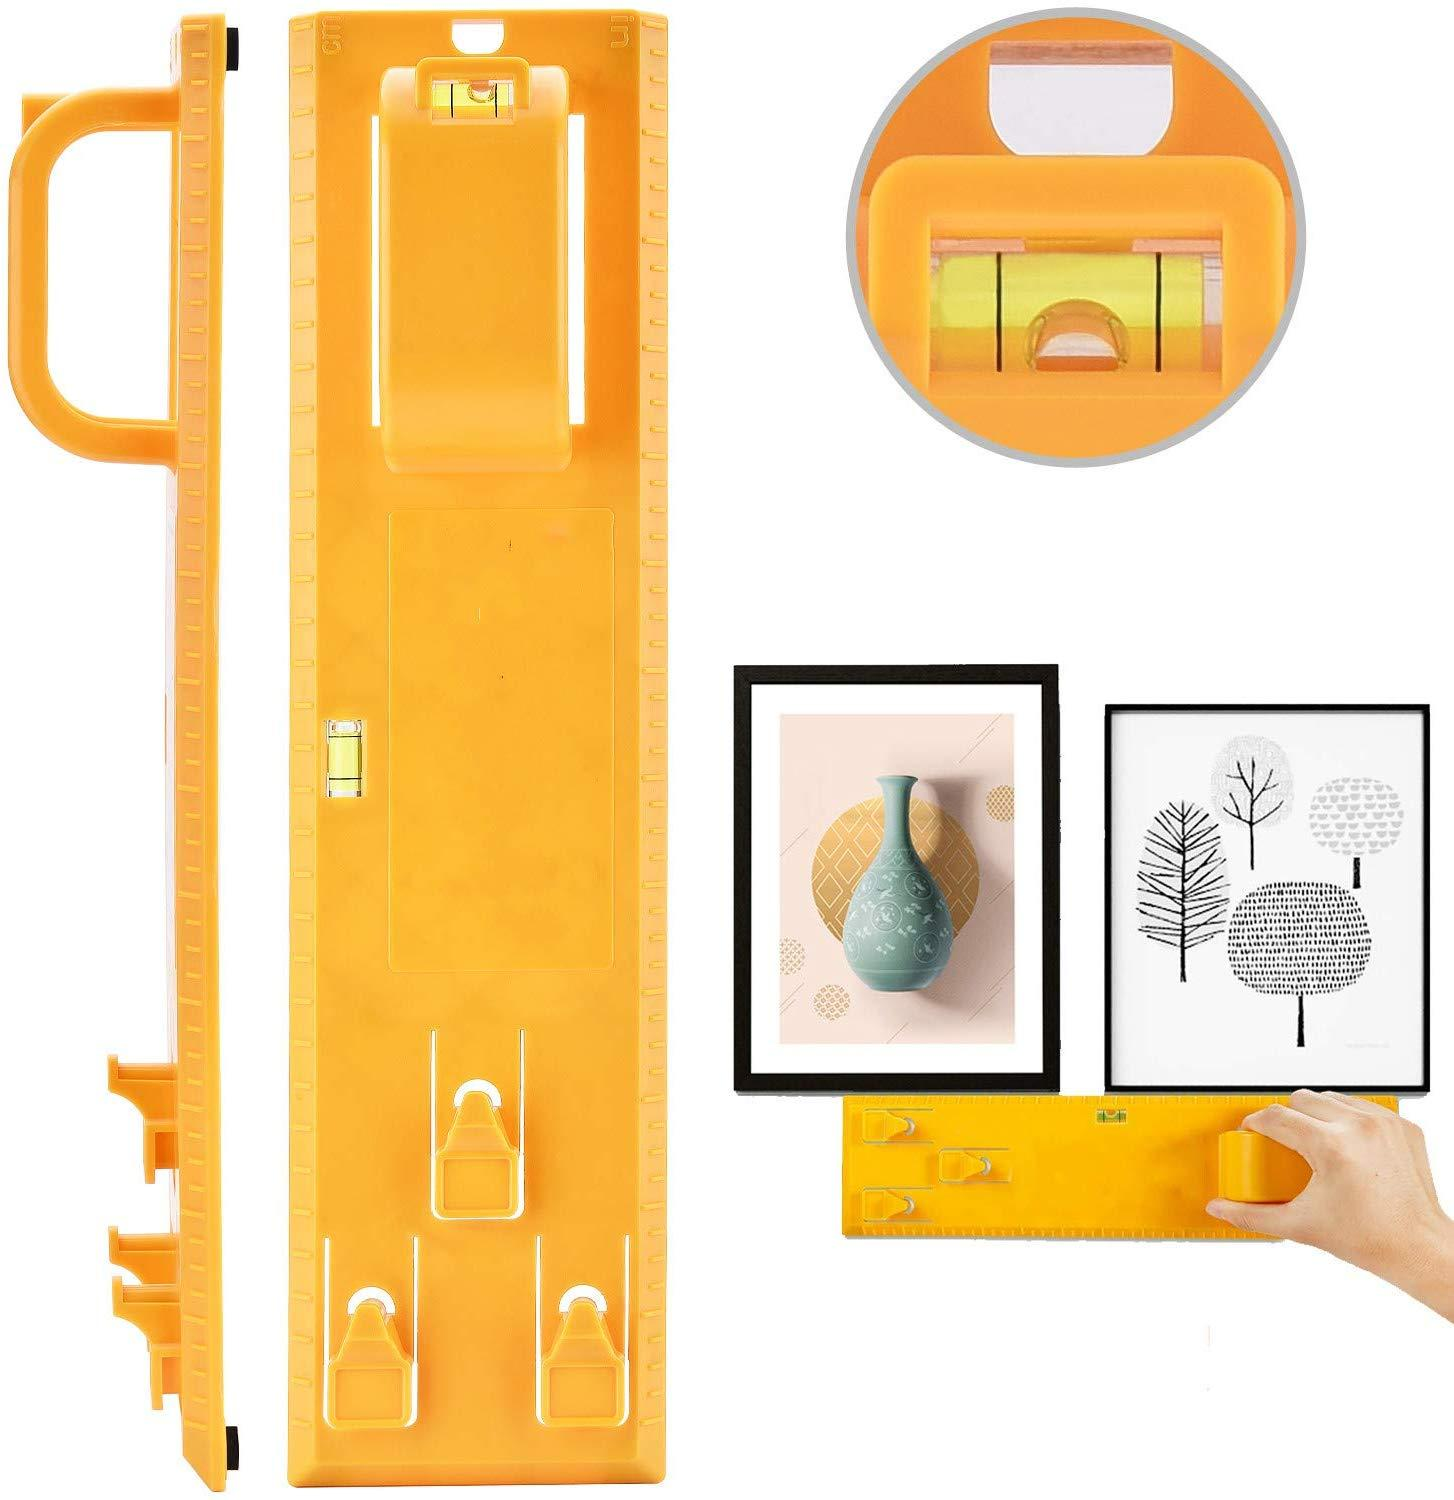 Picture Hanging Kit, Picture Frame Hanger Tool, Picture Hanger Tools With Level Suitable For All Wall Materials, Picture Frame R фото